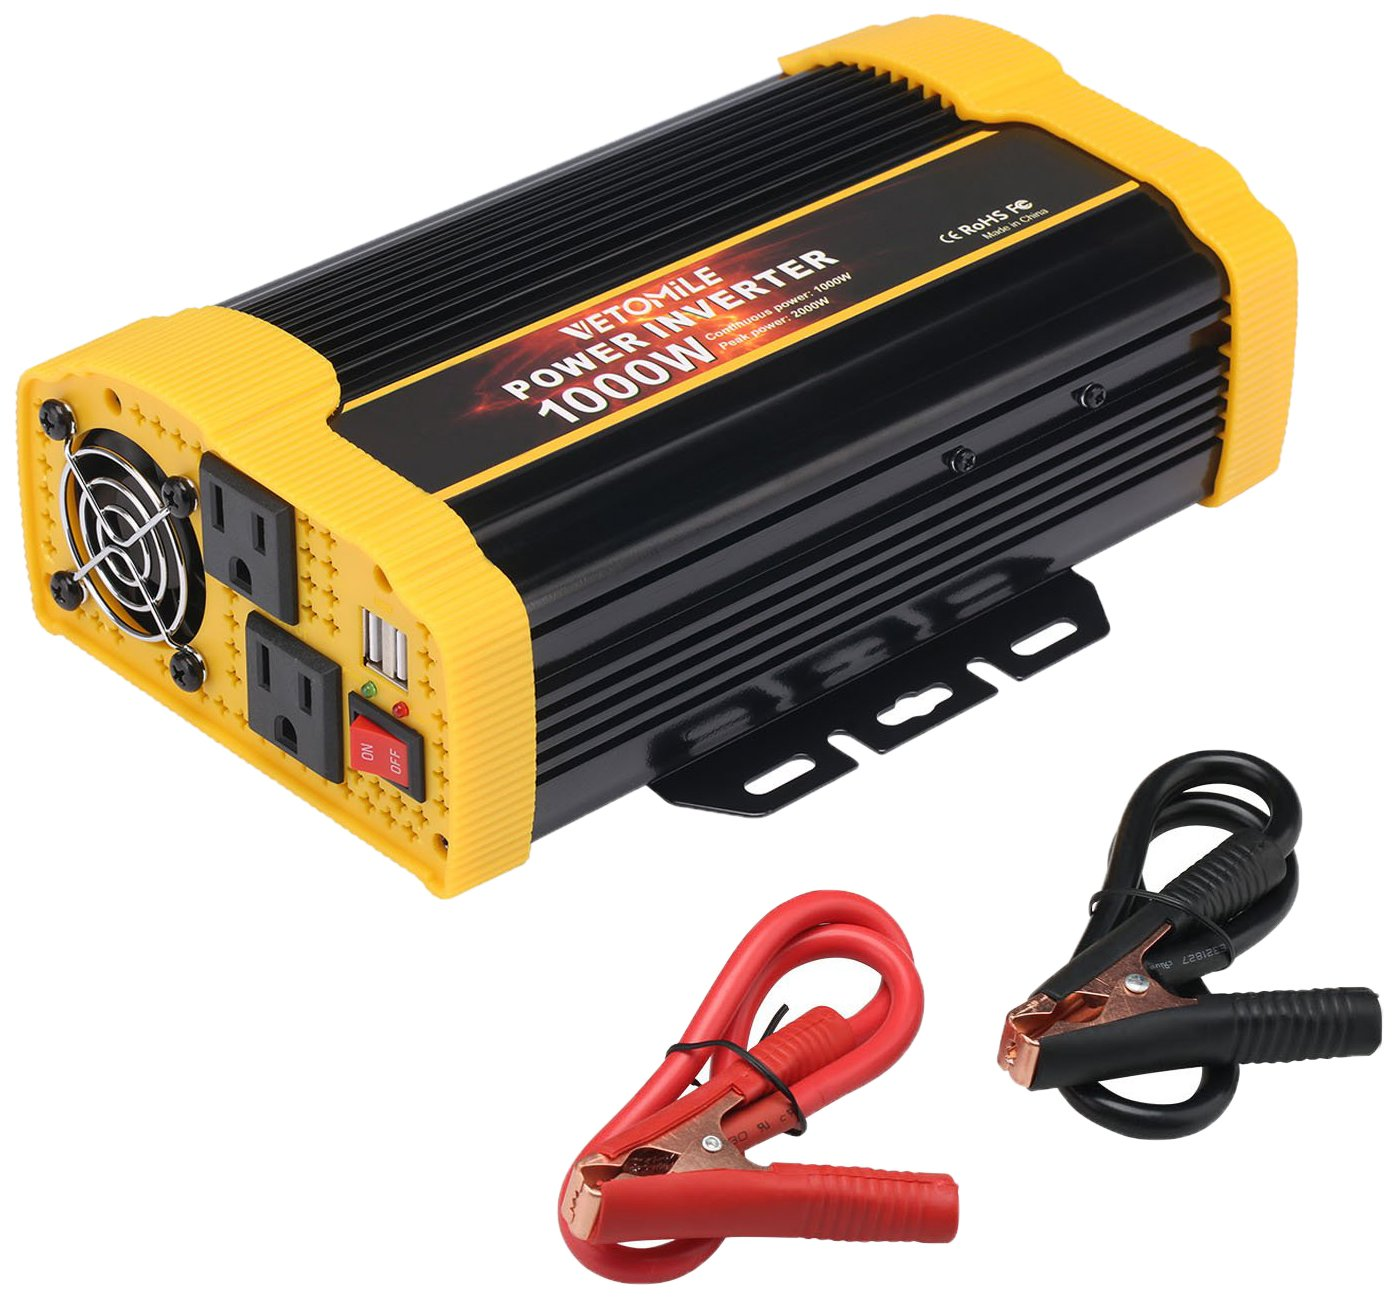 VETOMILE 1000W Power Inverter DC 12V to 110V AC Car Inverter with 2.1A Dual USB Car Adapter